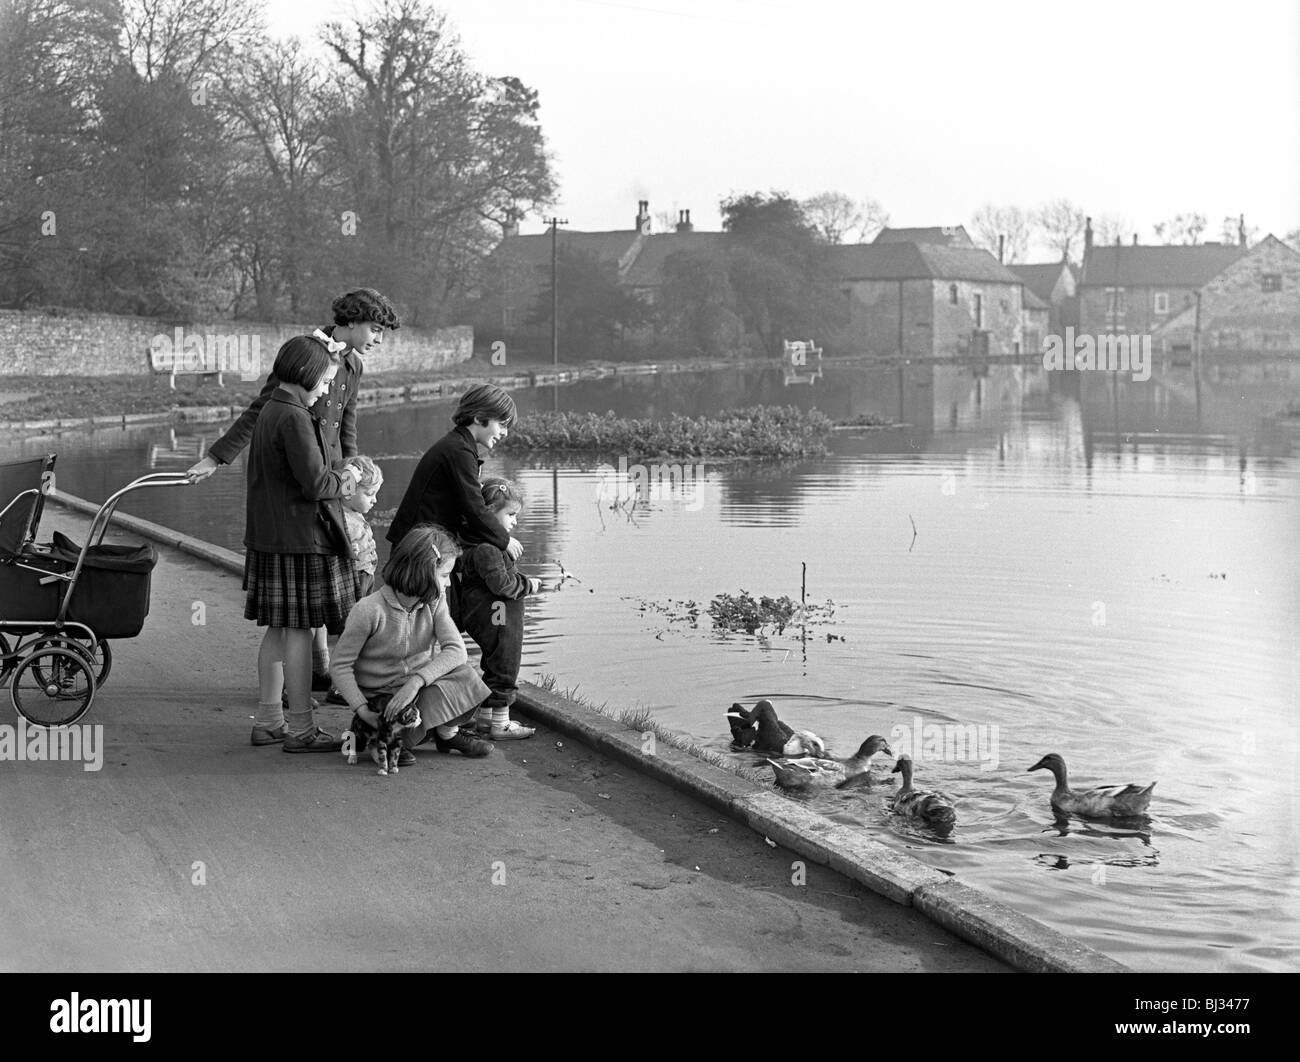 Village duck pond scene, Tickhill, Doncaster, South Yorkshire, 1961. Artist: Michael Walters - Stock Image